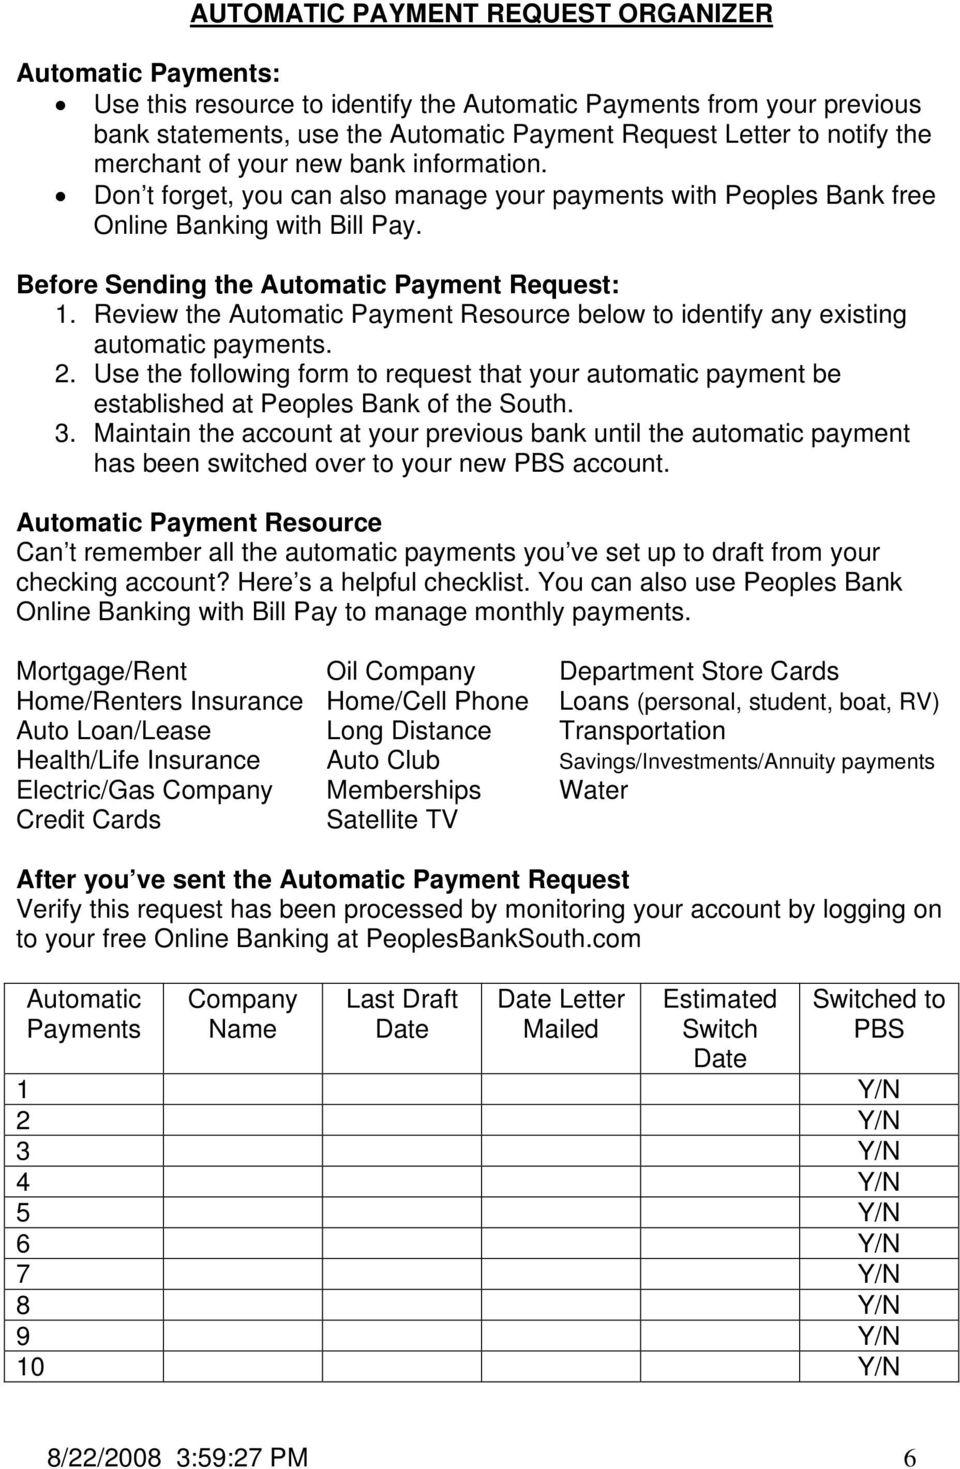 Review the Automatic Payment Resource below to identify any existing automatic payments. 2. Use the following form to request that your automatic payment be established at Peoples Bank of the South.